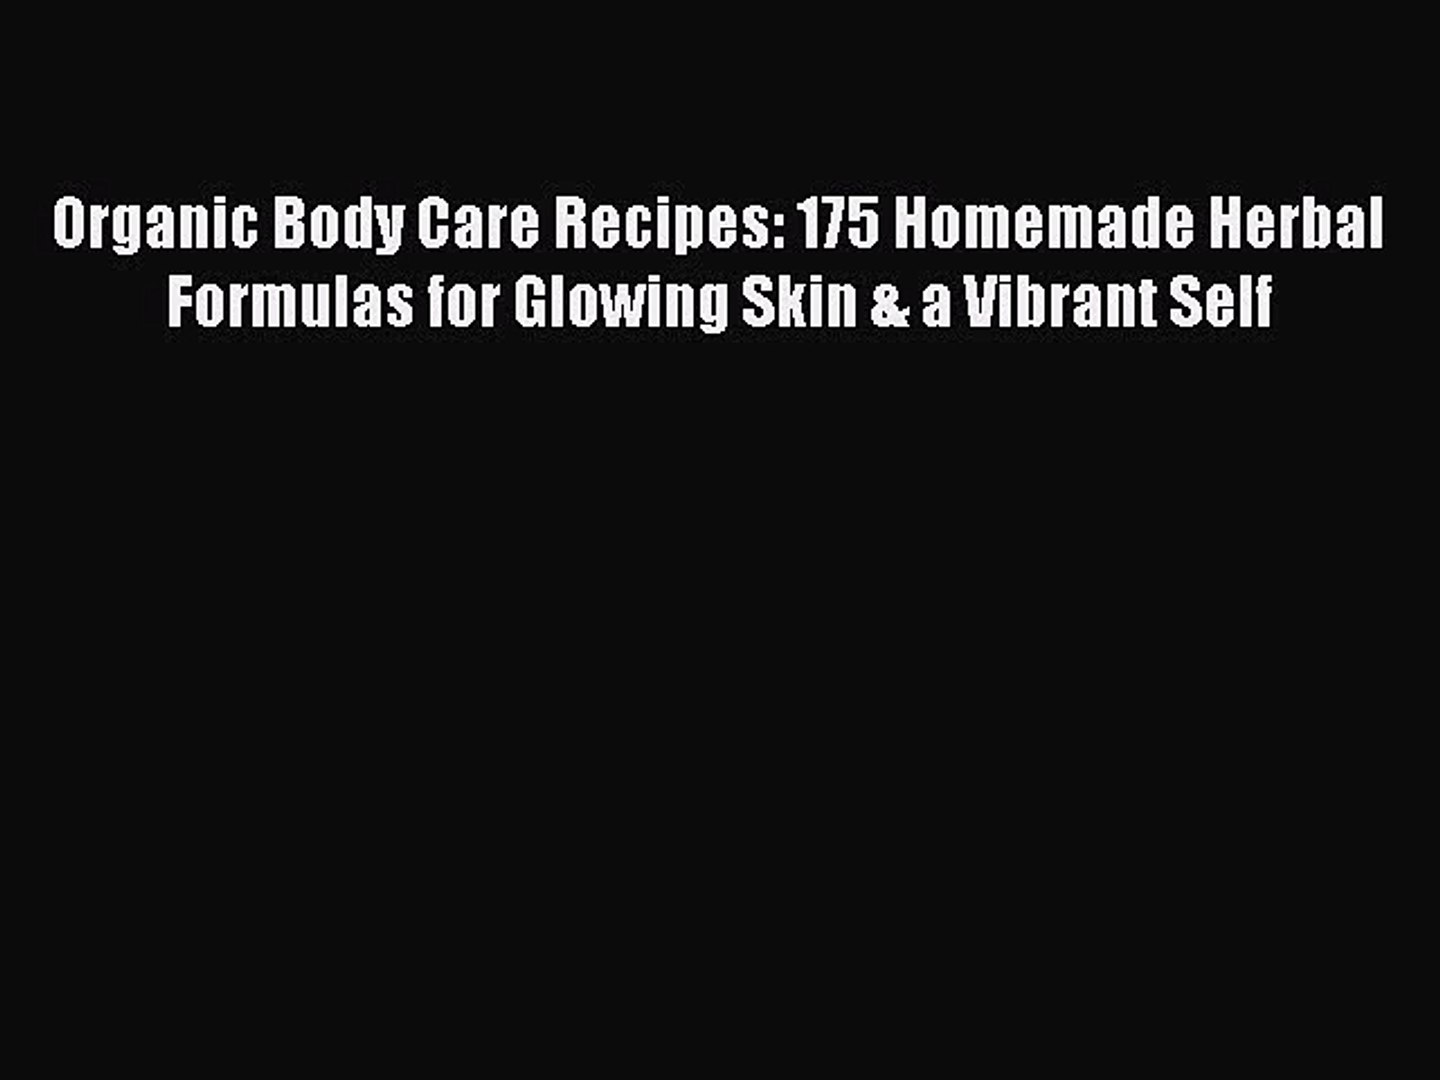 [PDF] Organic Body Care Recipes: 175 Homemade Herbal Formulas for Glowing Skin & a Vibrant